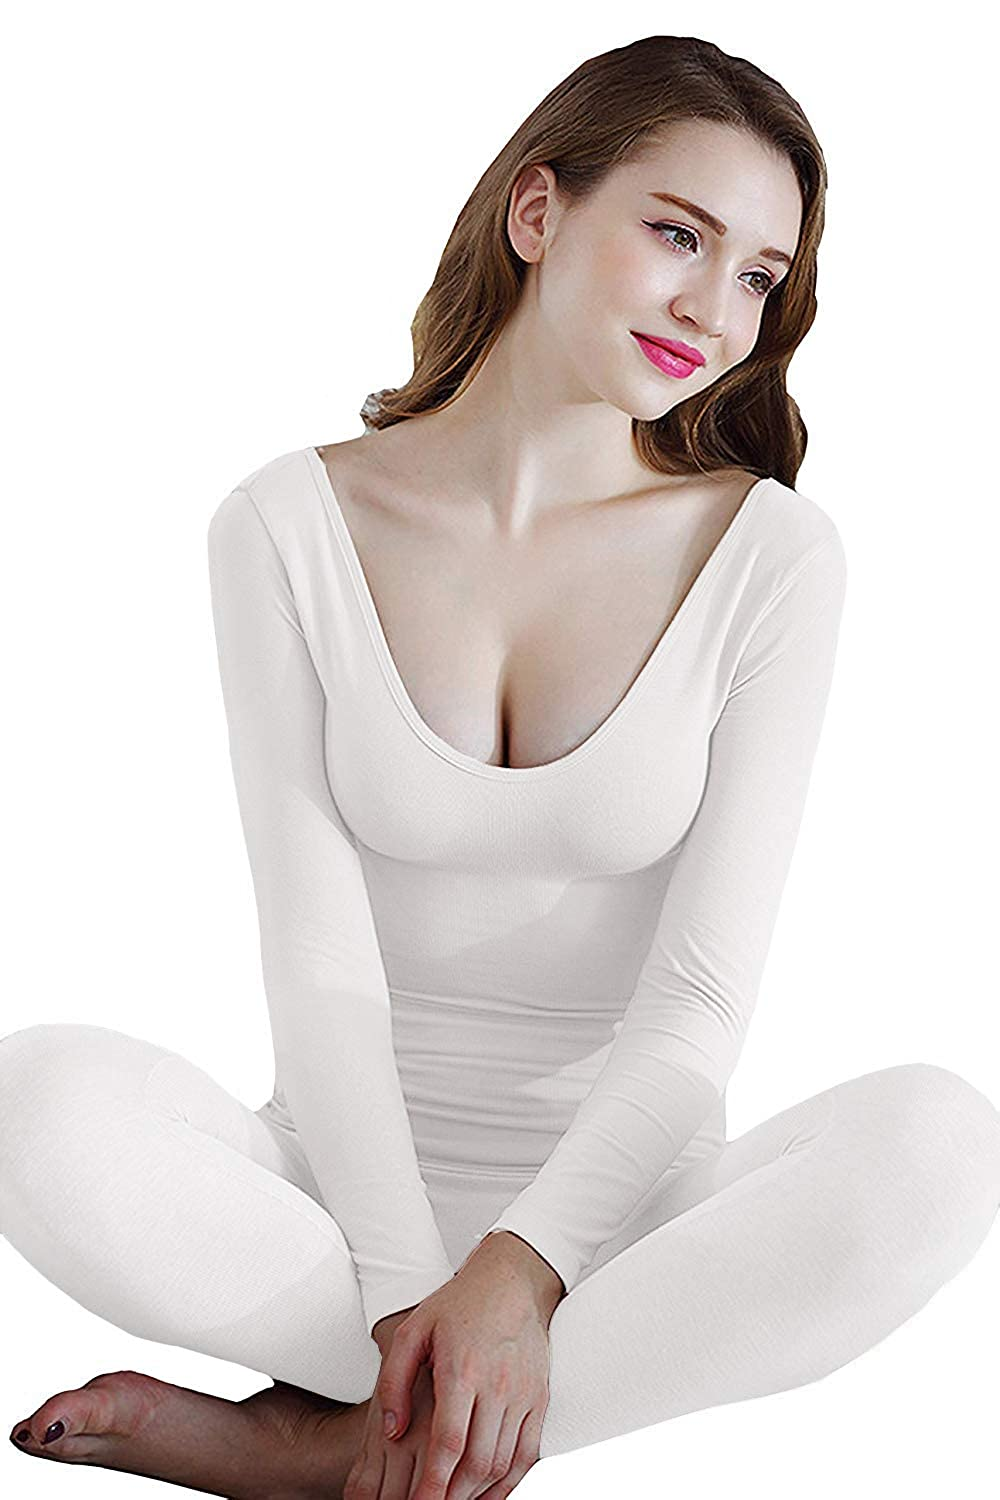 MMissy Womens Deep Neck Long Sleeves Thermal Underwear Soft Long John Winter Base Layer Fitted Waist Slimming Sleepwear